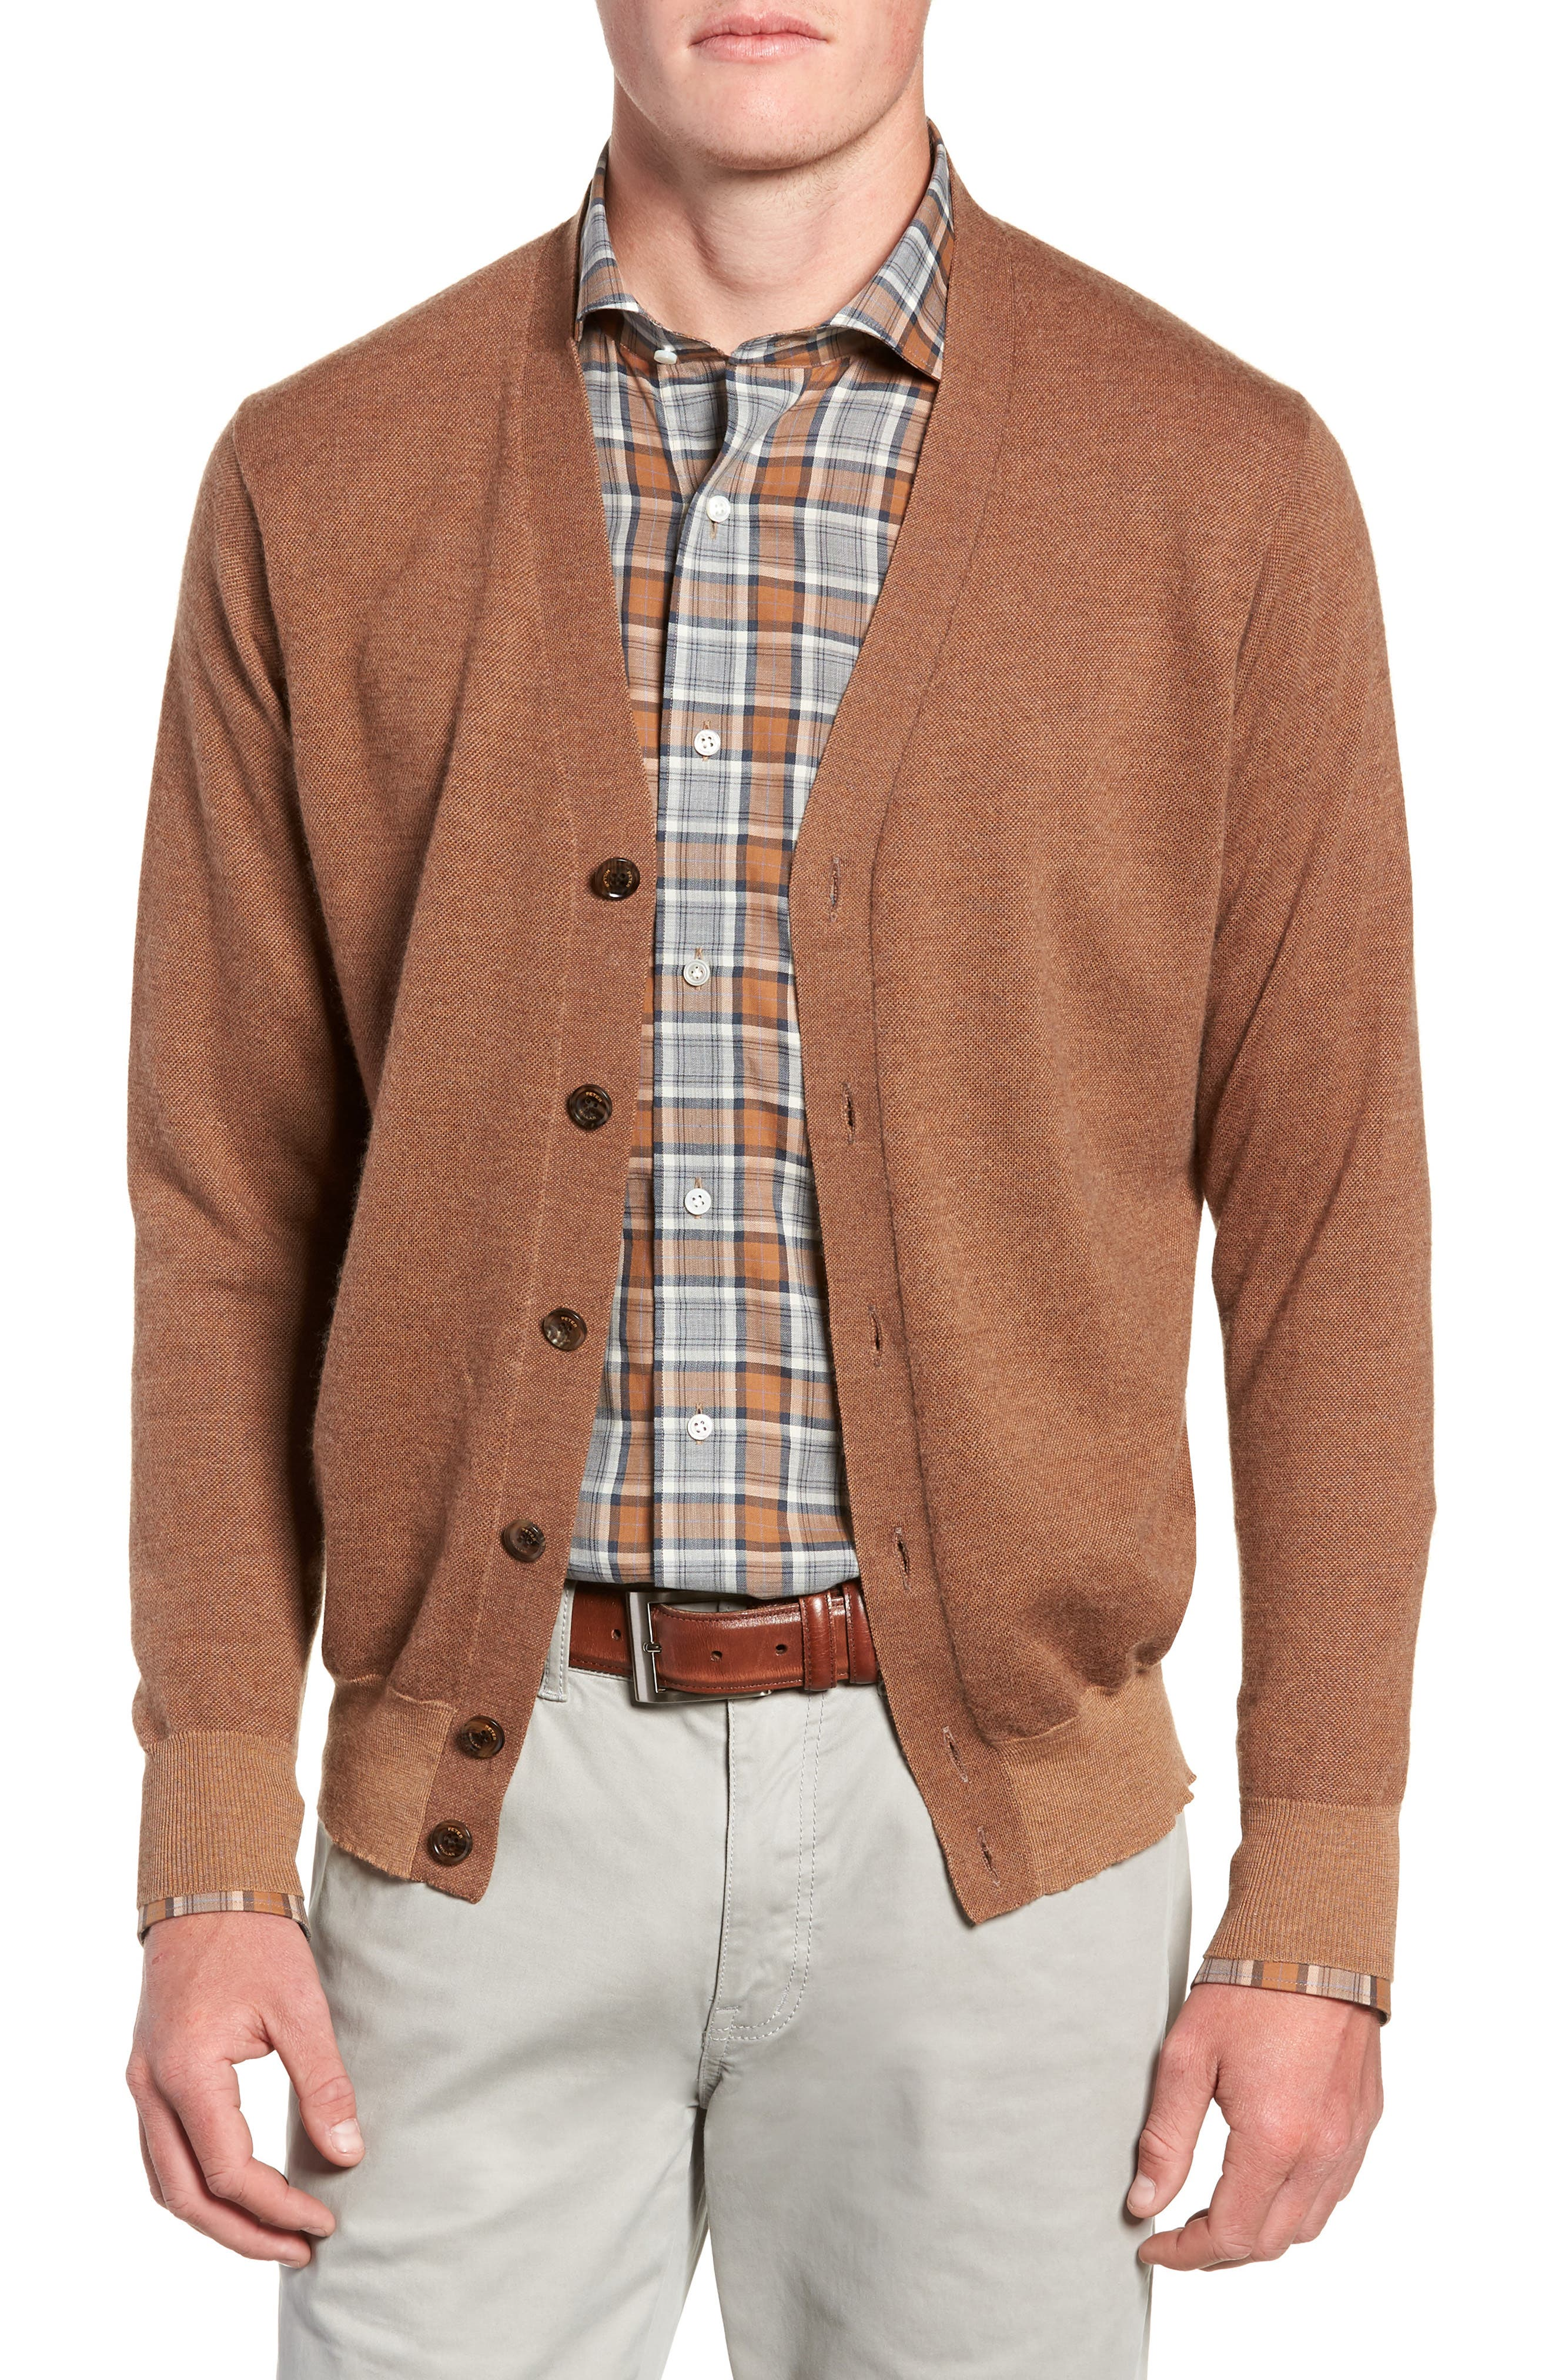 English Manor Cardigan,                             Main thumbnail 1, color,                             VICUNA